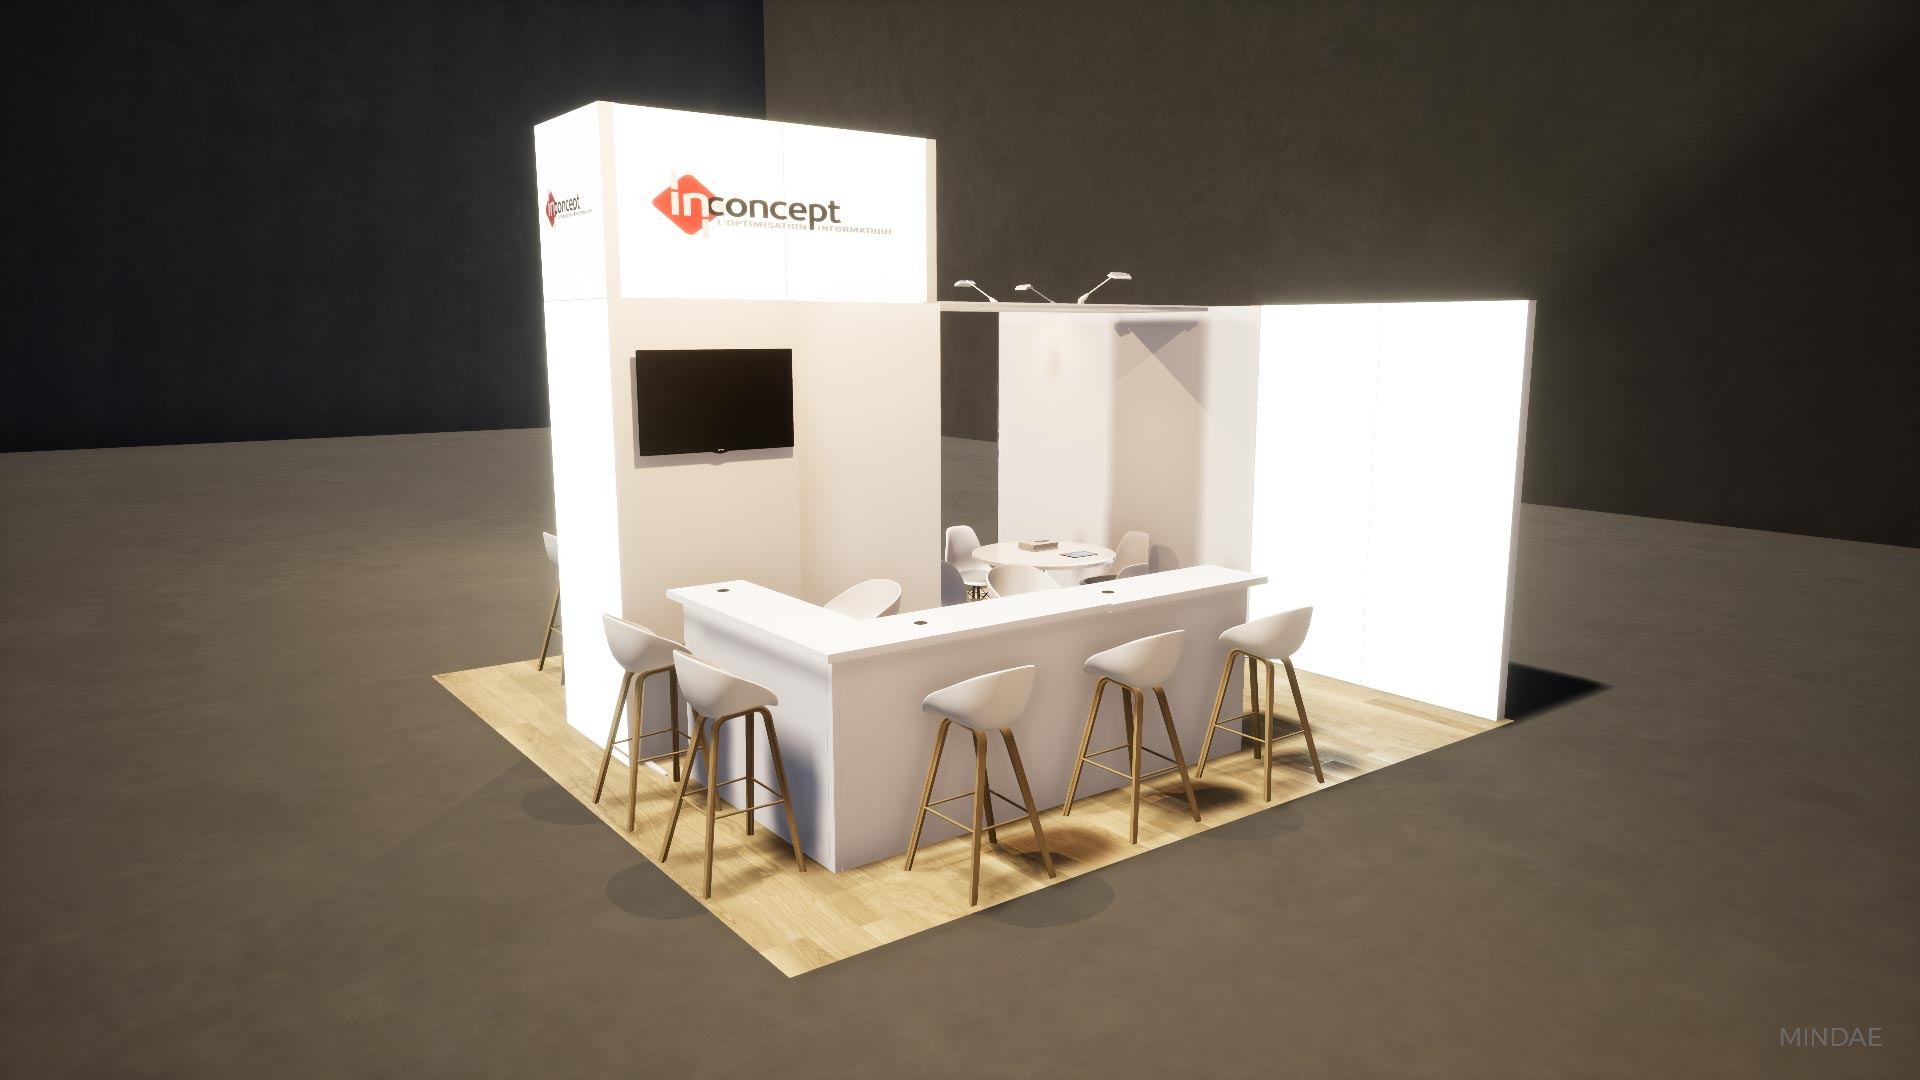 Mindae_3D_magik_expo_stand_in_concept_immobilier_evenementiel-(5)